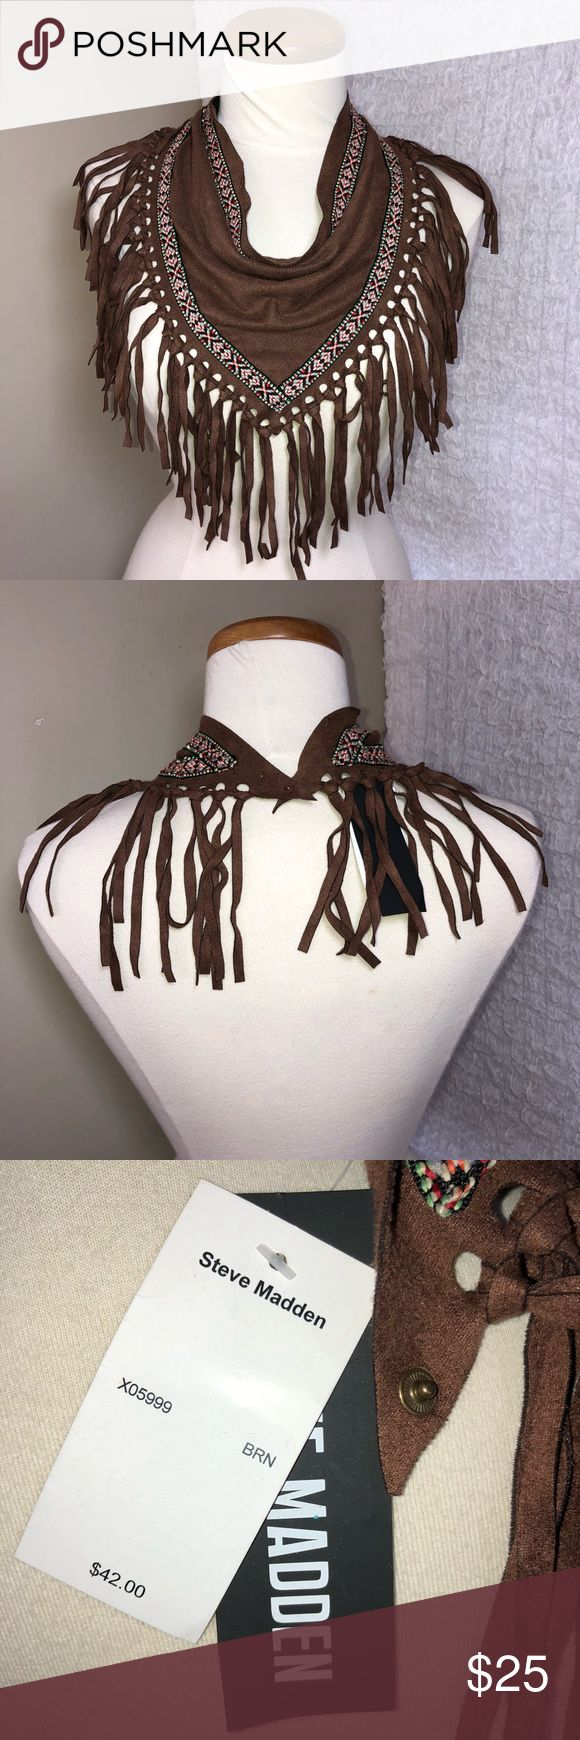 NWT Steve Madden brown suede fringe aztec scarfb This Steve Madden tribal brown suede fringe aztec scarf. Original price was $42. No flaws. NWT. Steve Madden Accessories Scarves & Wraps